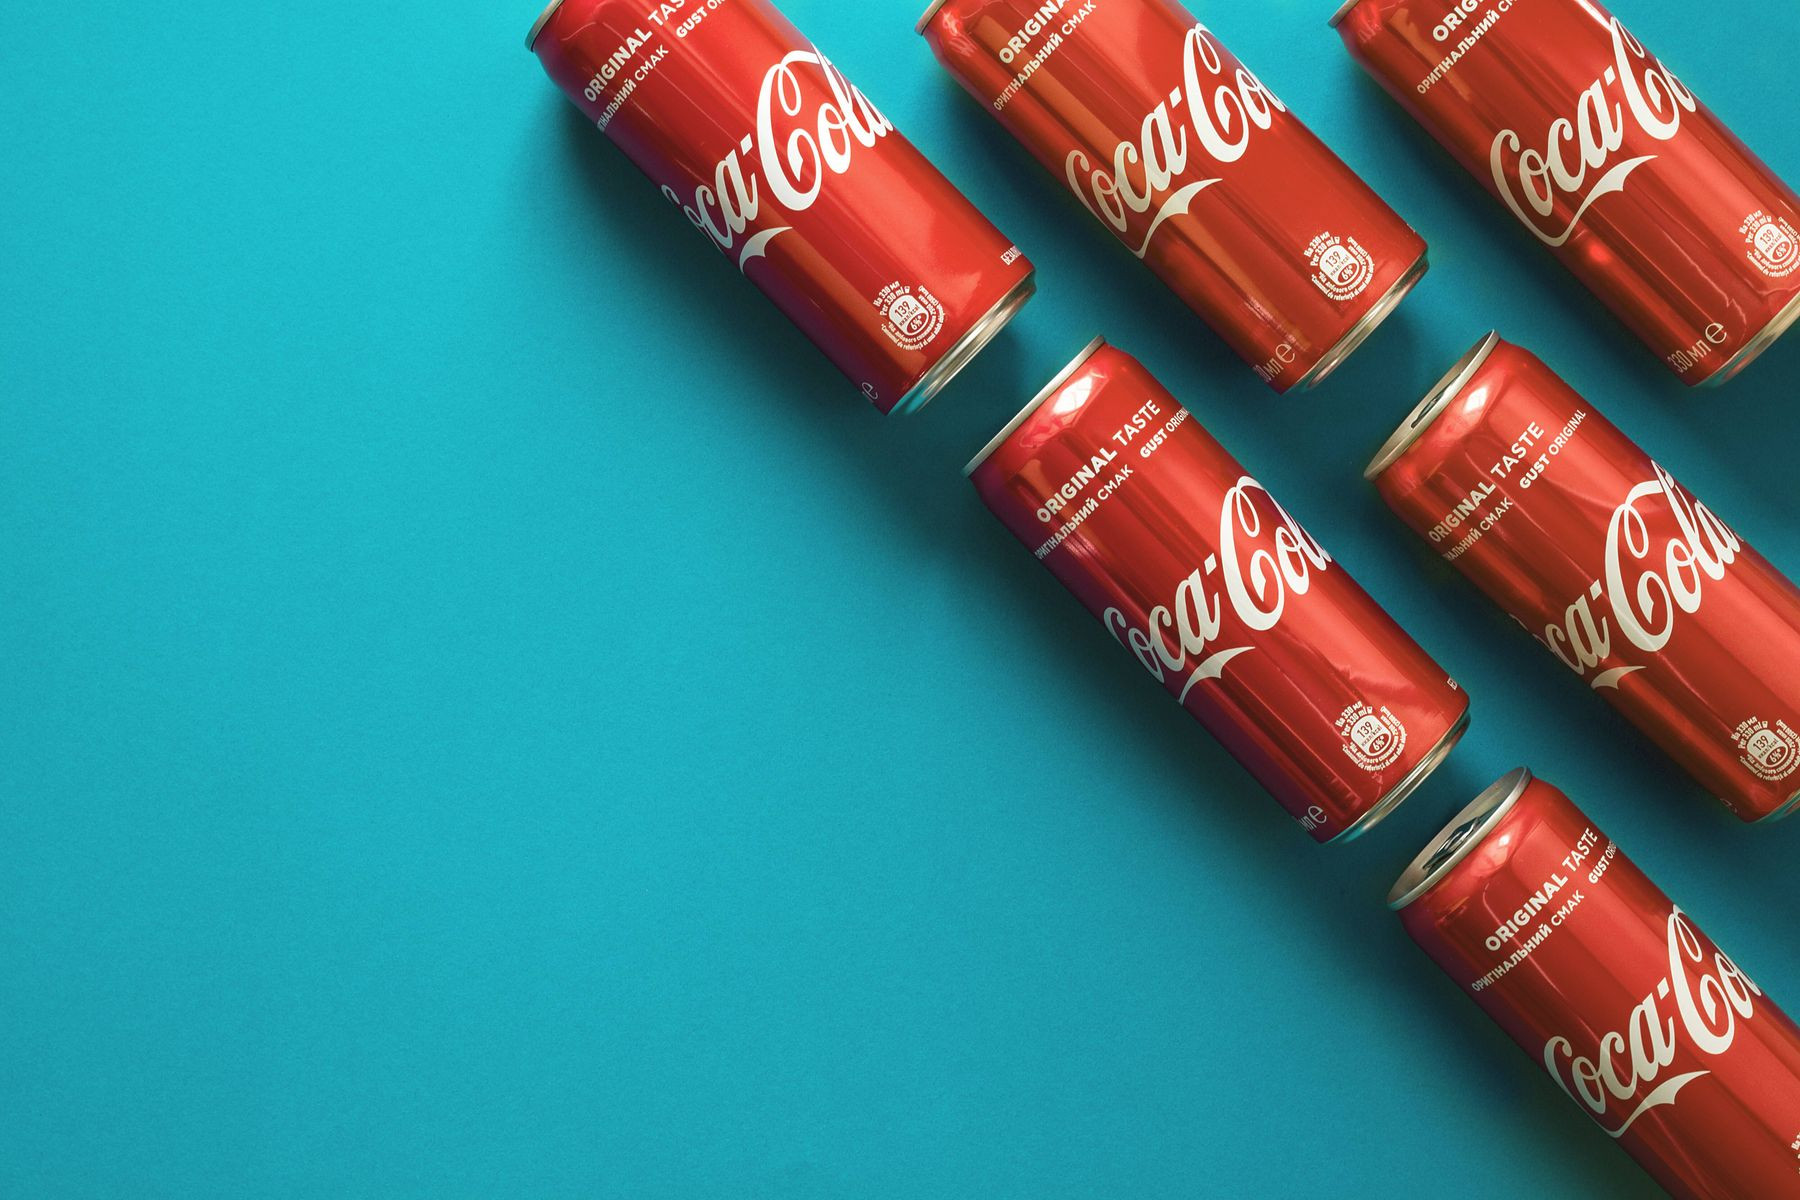 Coca cola cans on blue background